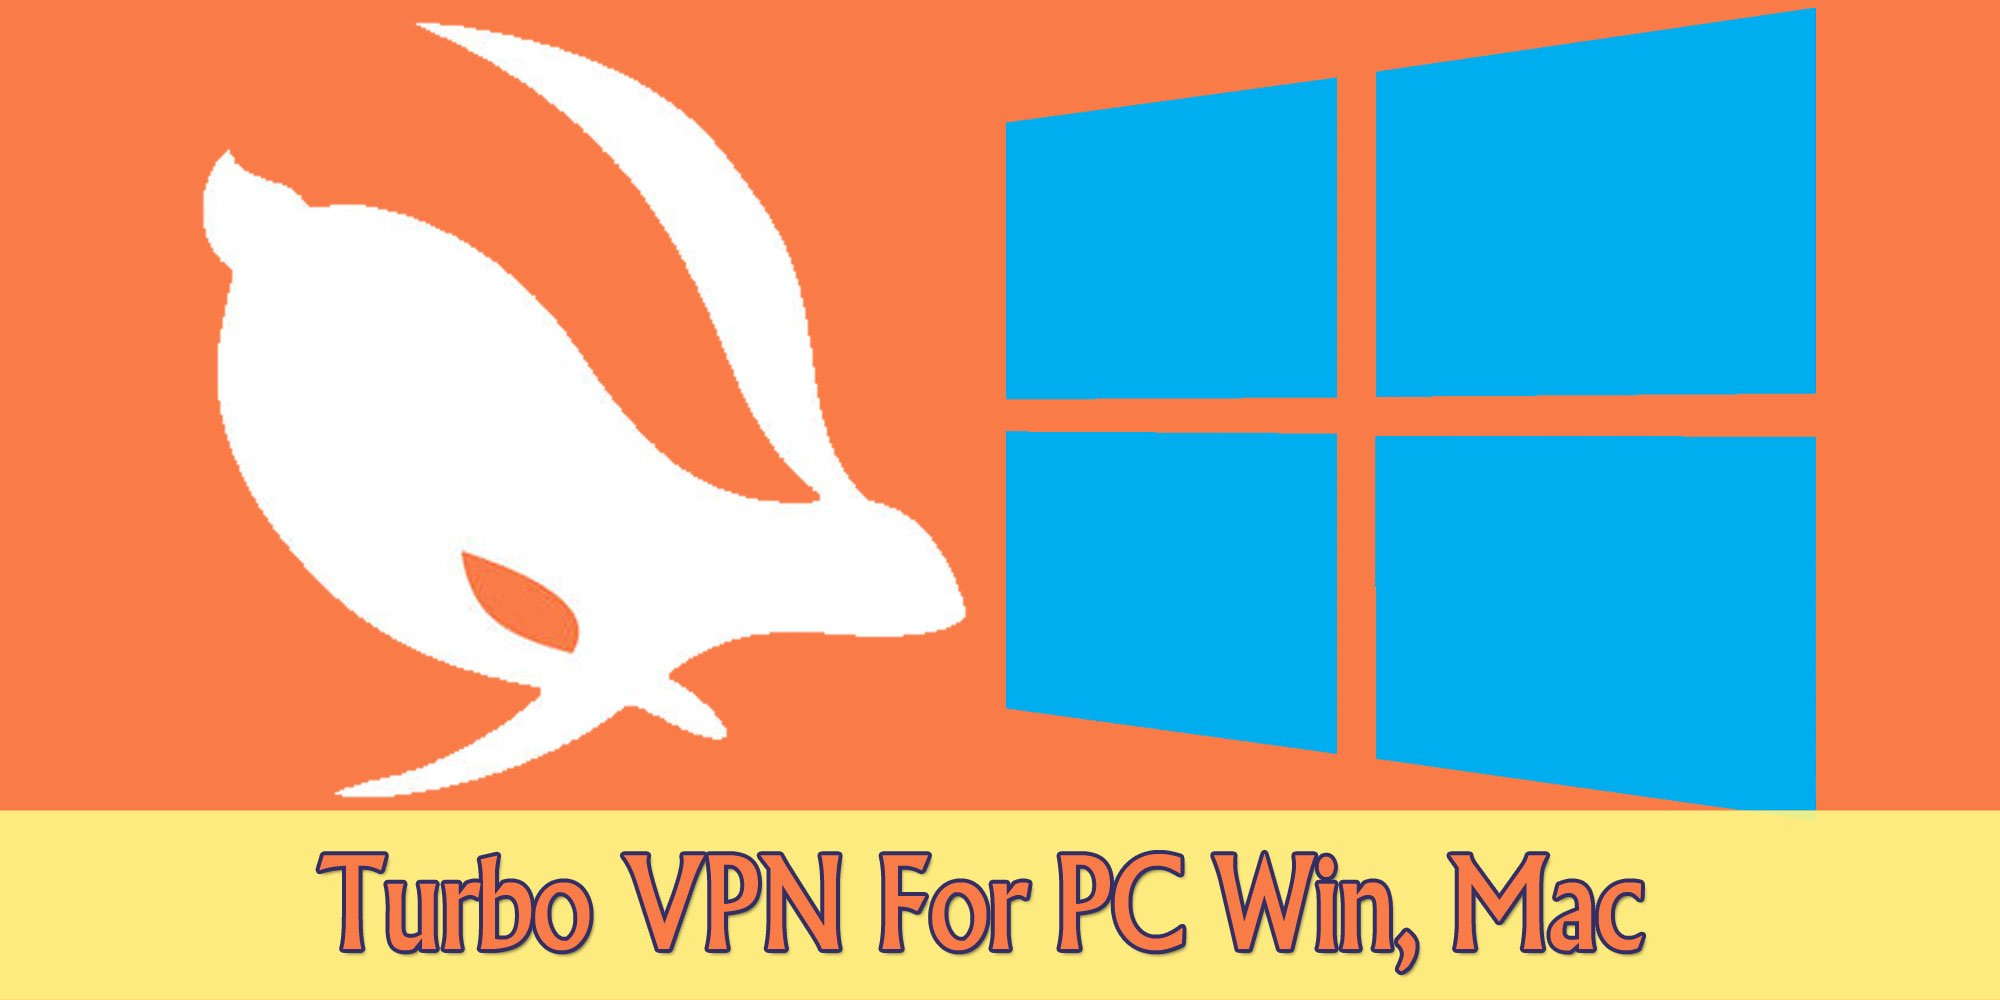 Turbo VPN on windows